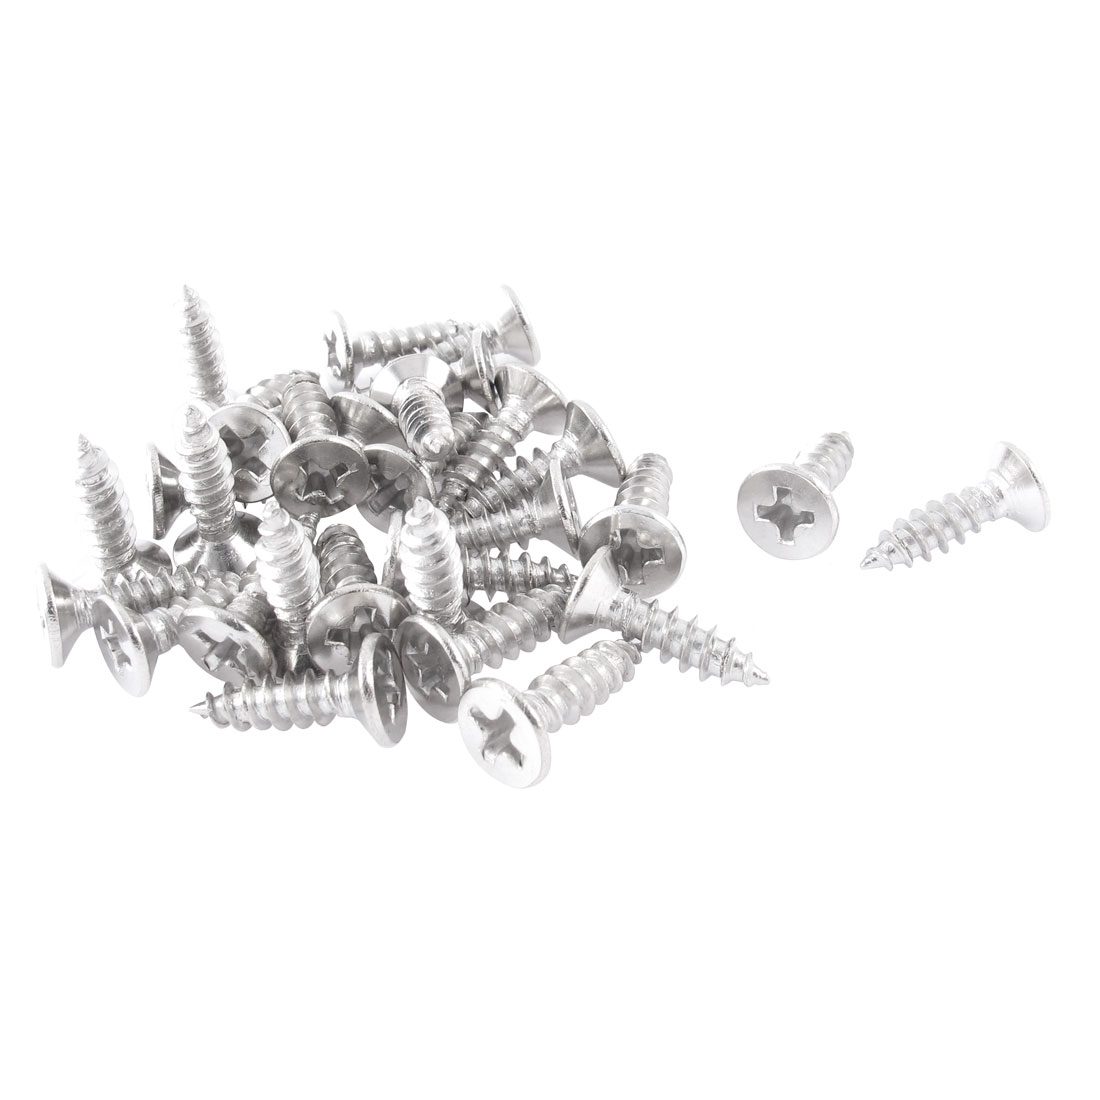 Aliexpress Buy Uxcell Silver Tone Self Tapping Phillips Flat Head Sheet Metal Screws